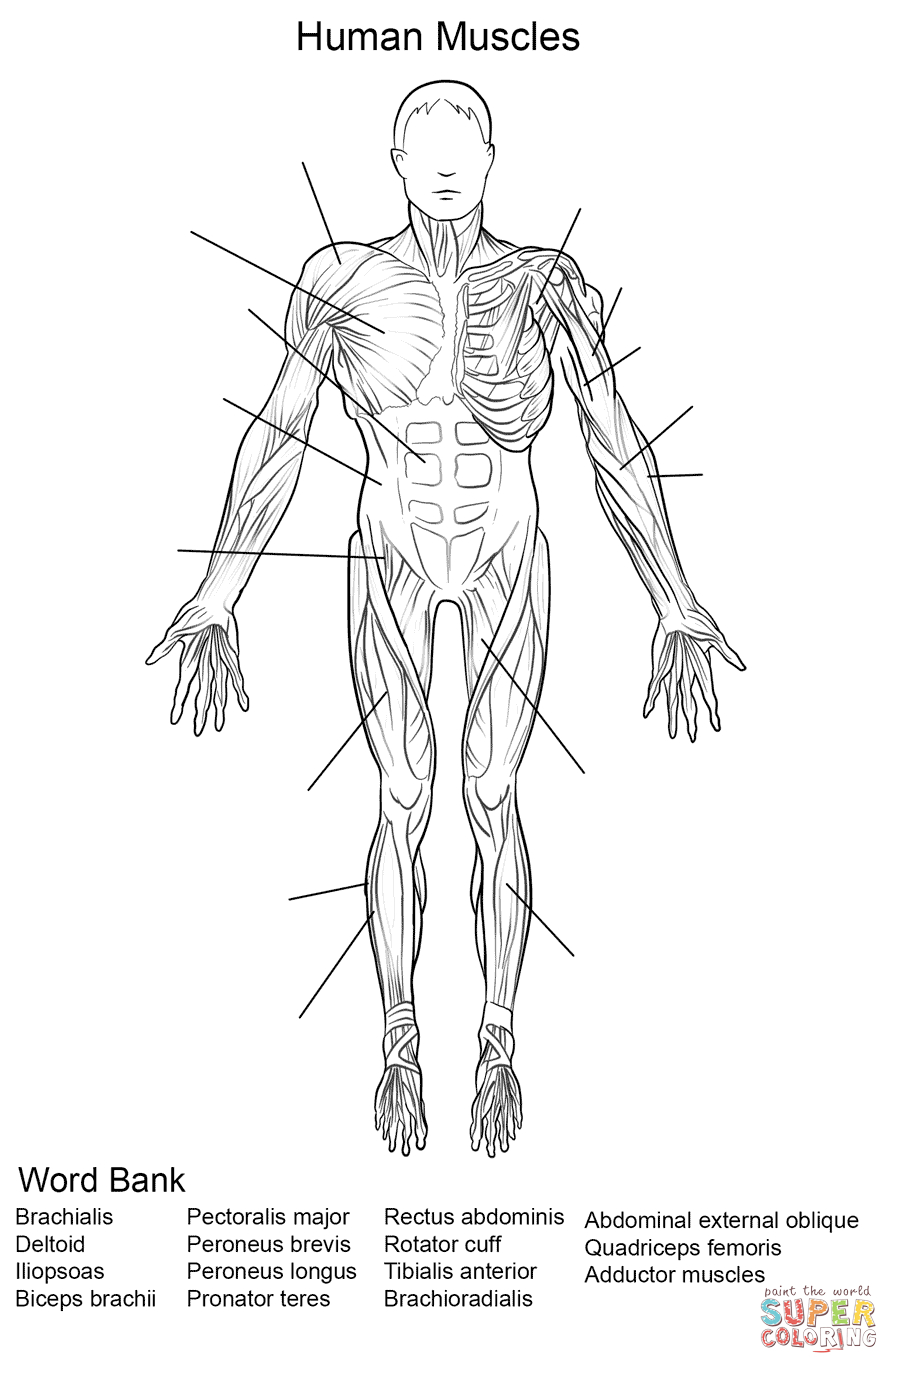 Human Muscles Front View Worksheet Coloring Page | Free Printable - Free Printable Human Anatomy Worksheets